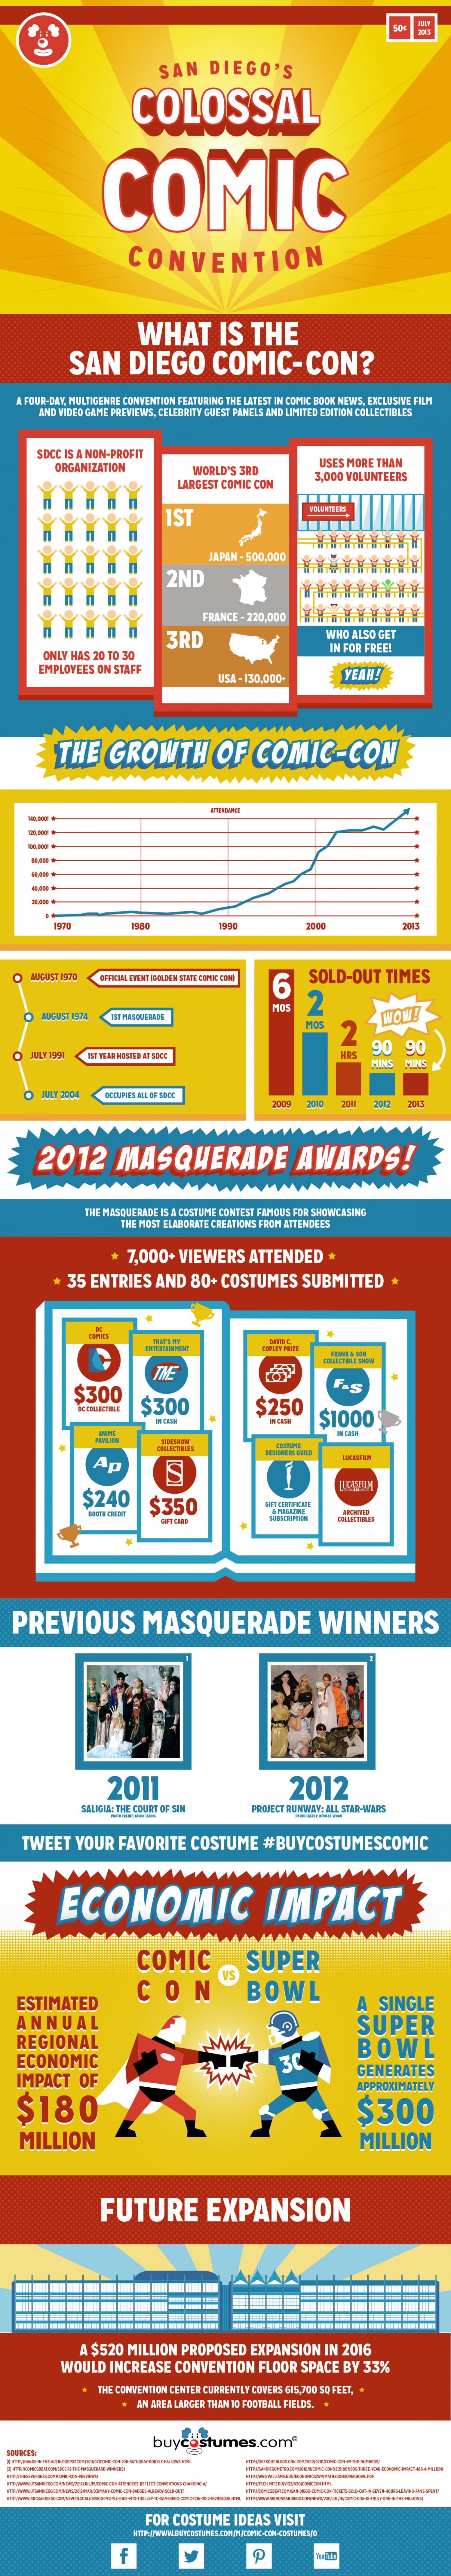 San Diego's Colossal Comic Convention Infographic